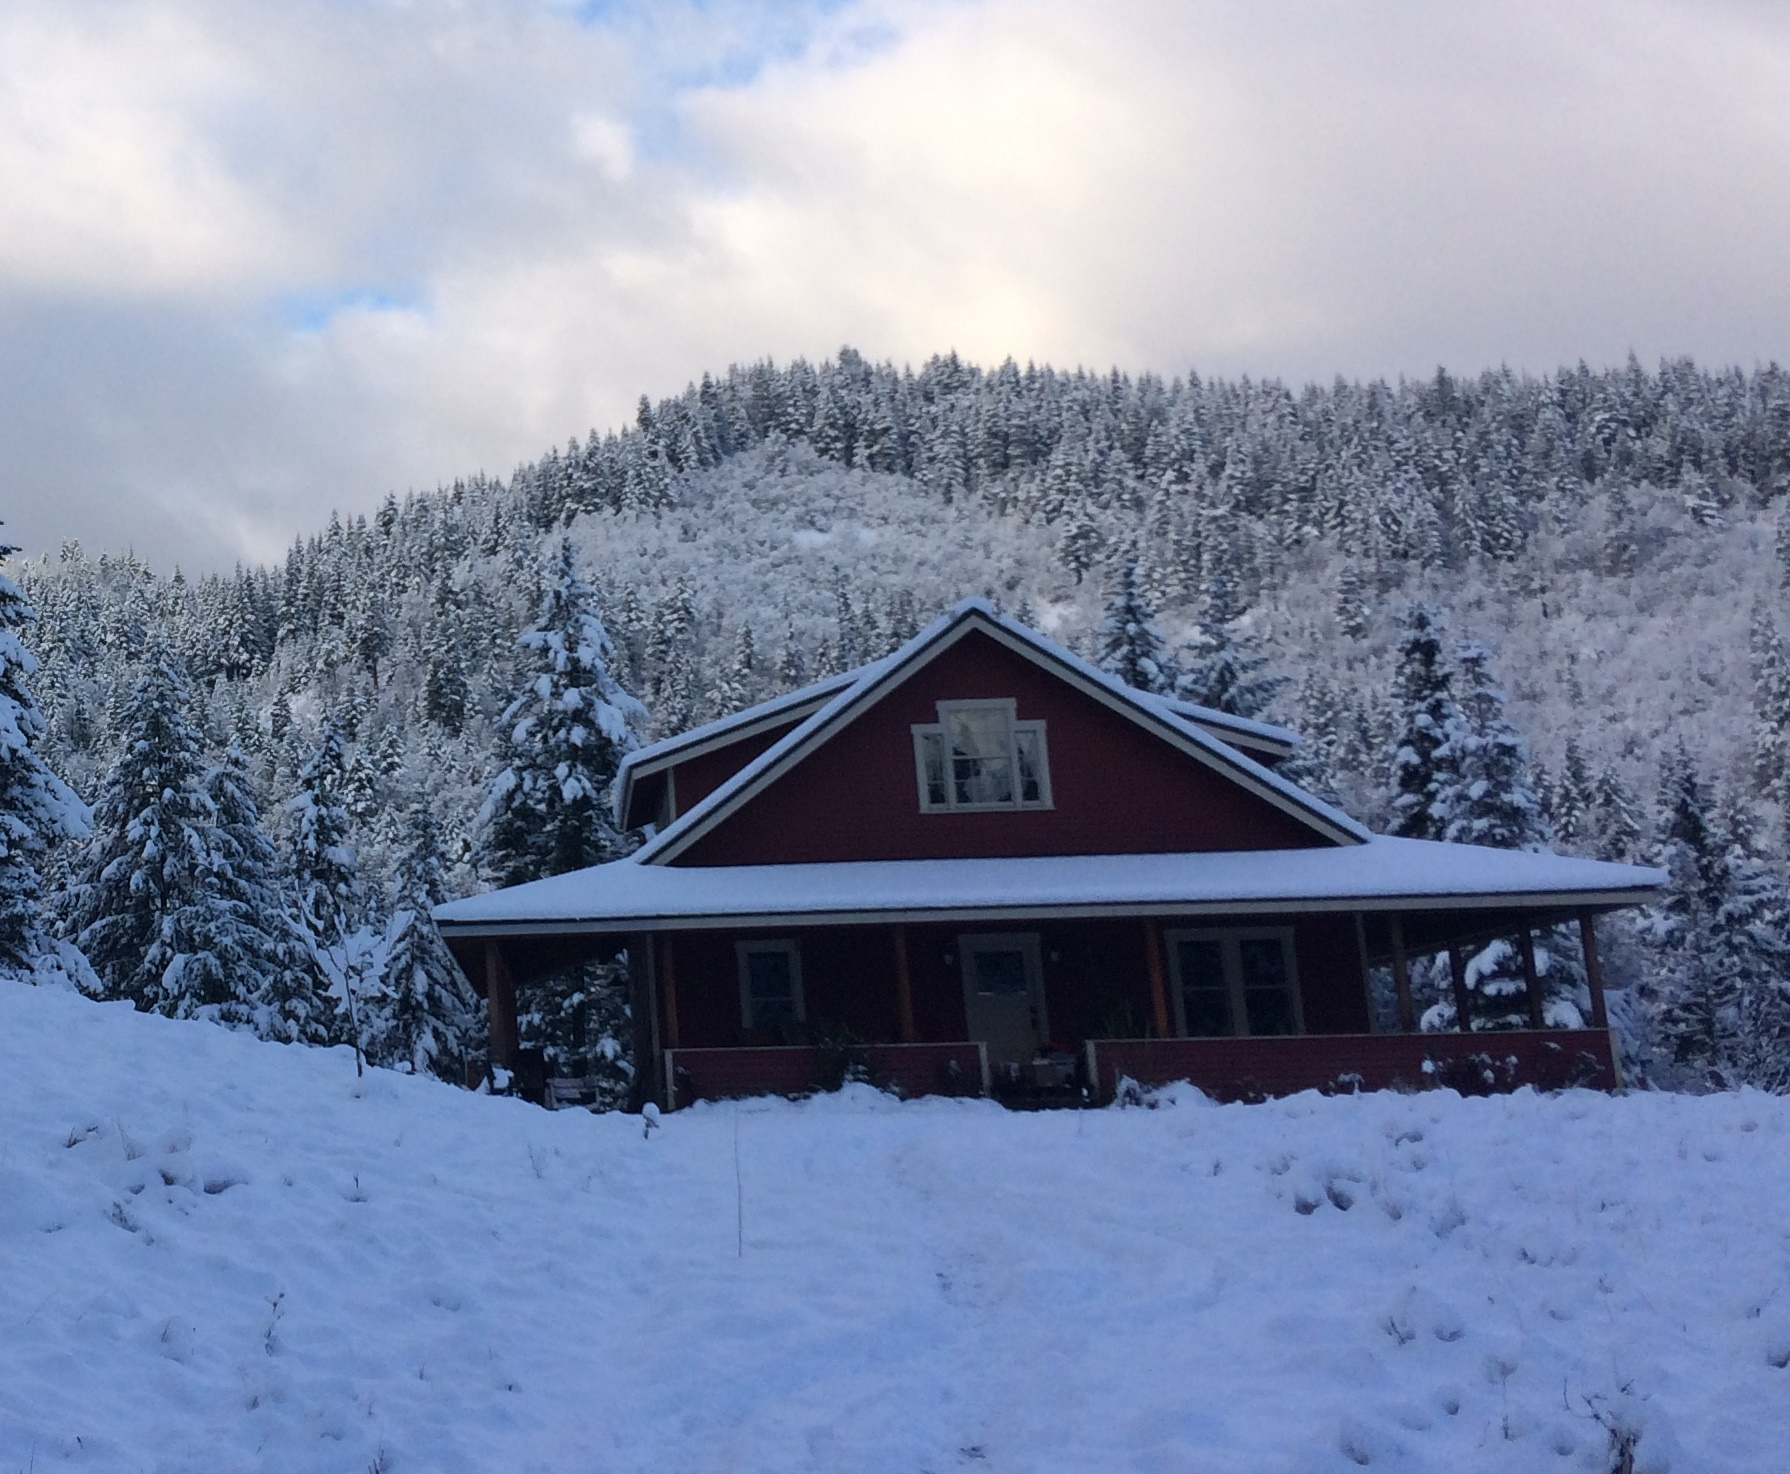 Pat_OHerrons_vacation_home_in_winter_(cropped).jpg